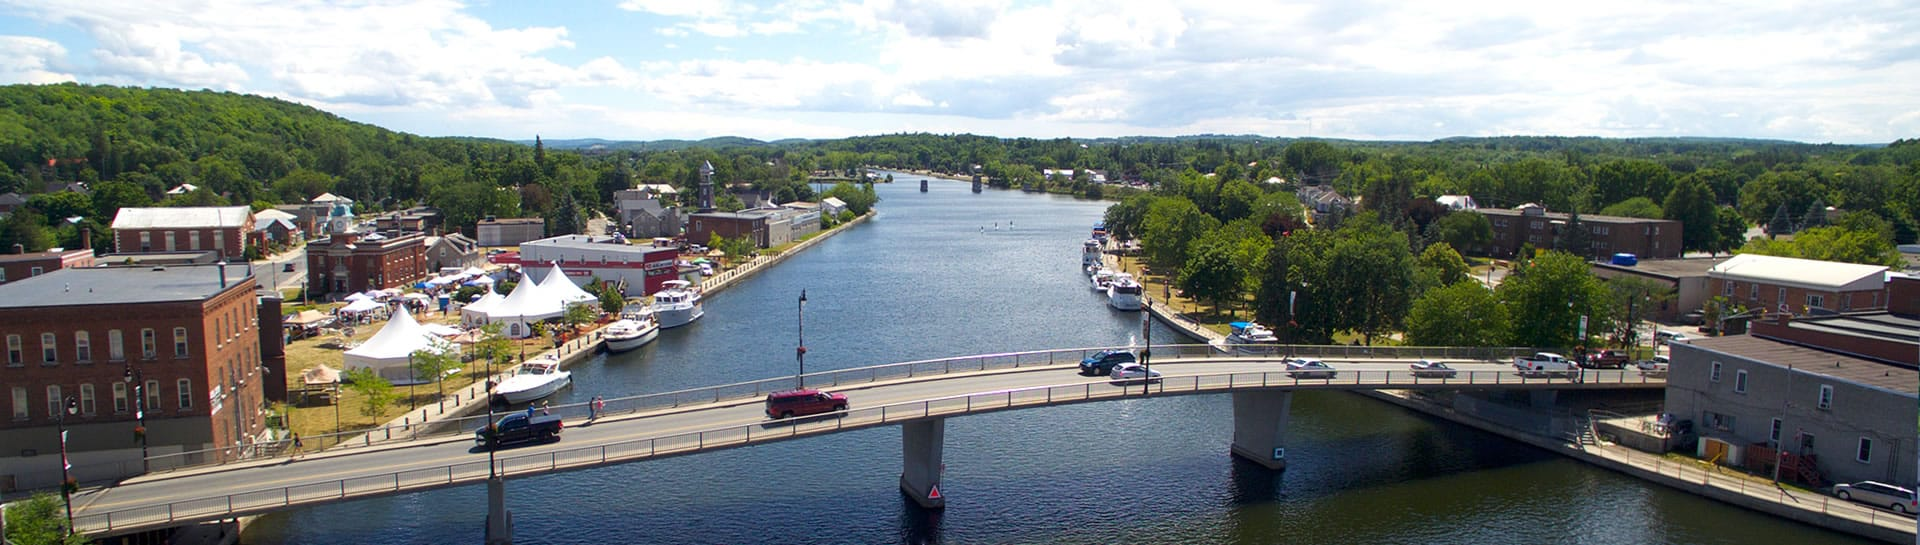 Drone view of bridge crossing Trent River in Campbellford with cars driving over